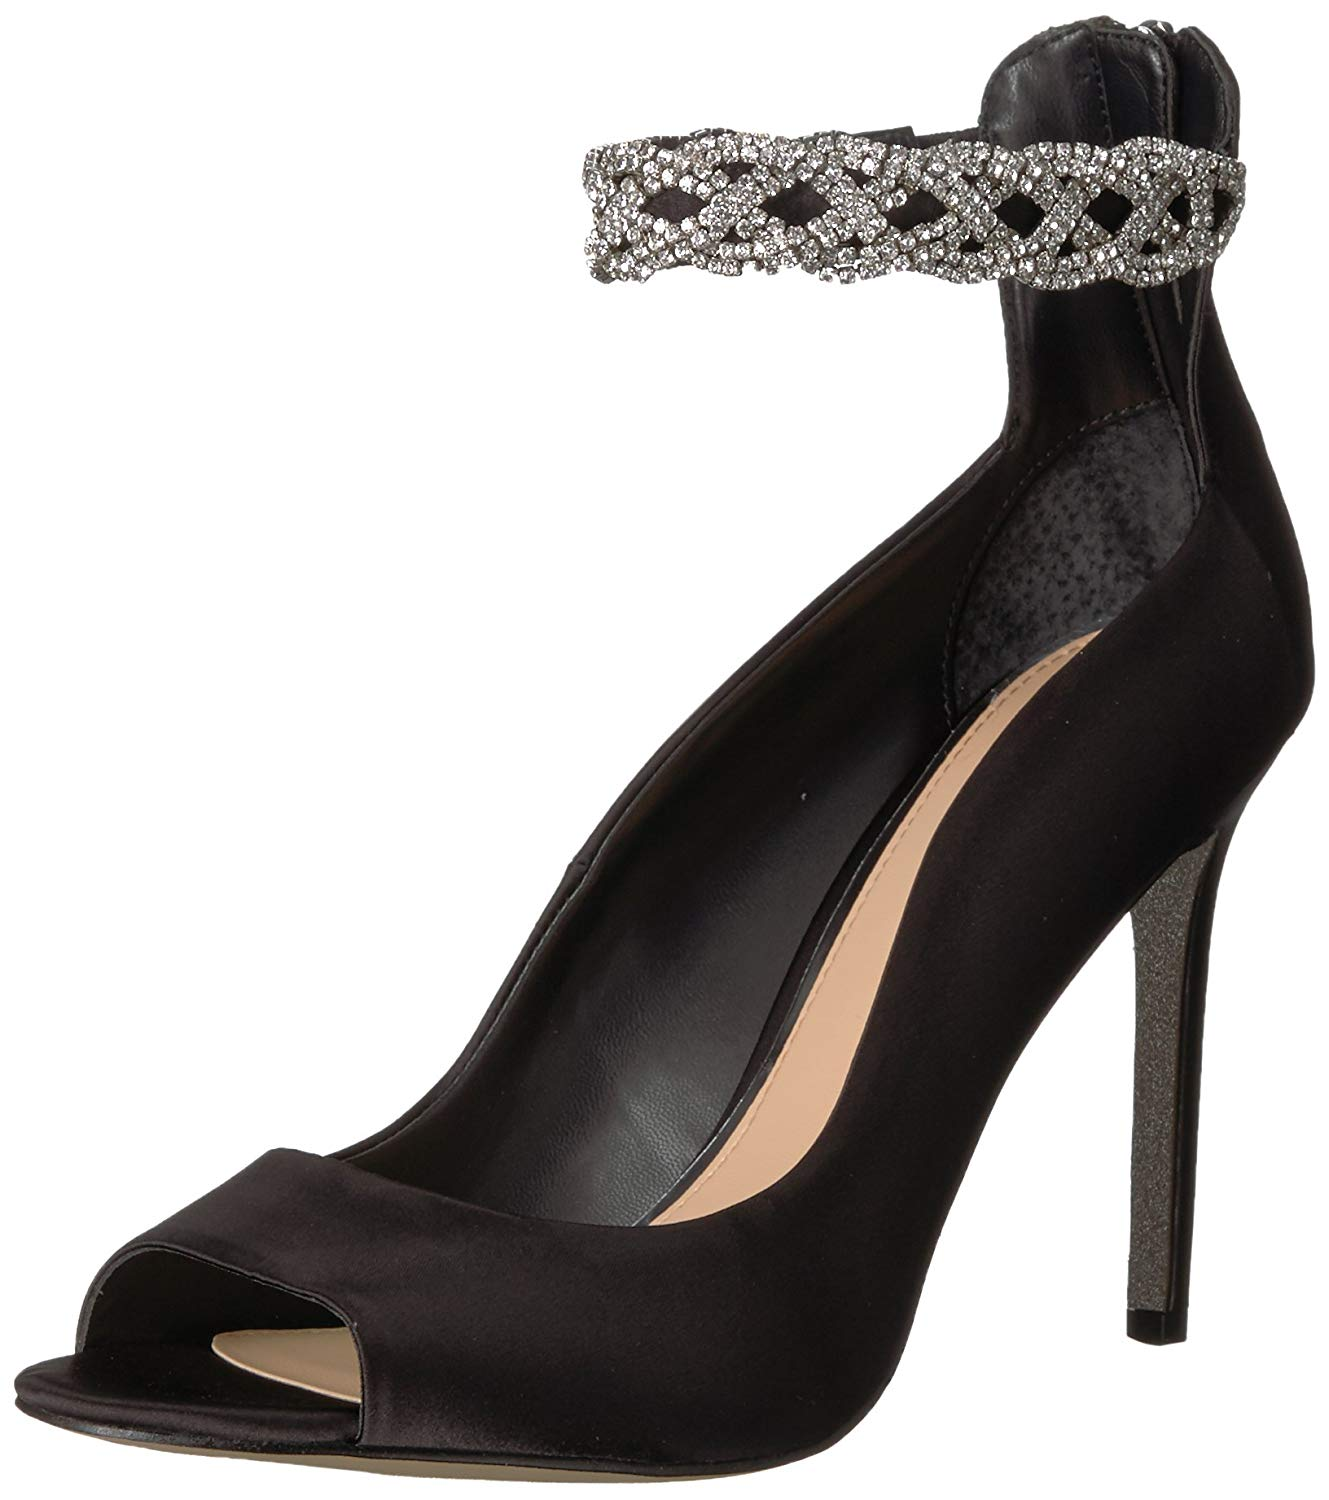 Badgley Mischka Jewel Women's Alanis Heeled Sandal, Black, Size 6.0